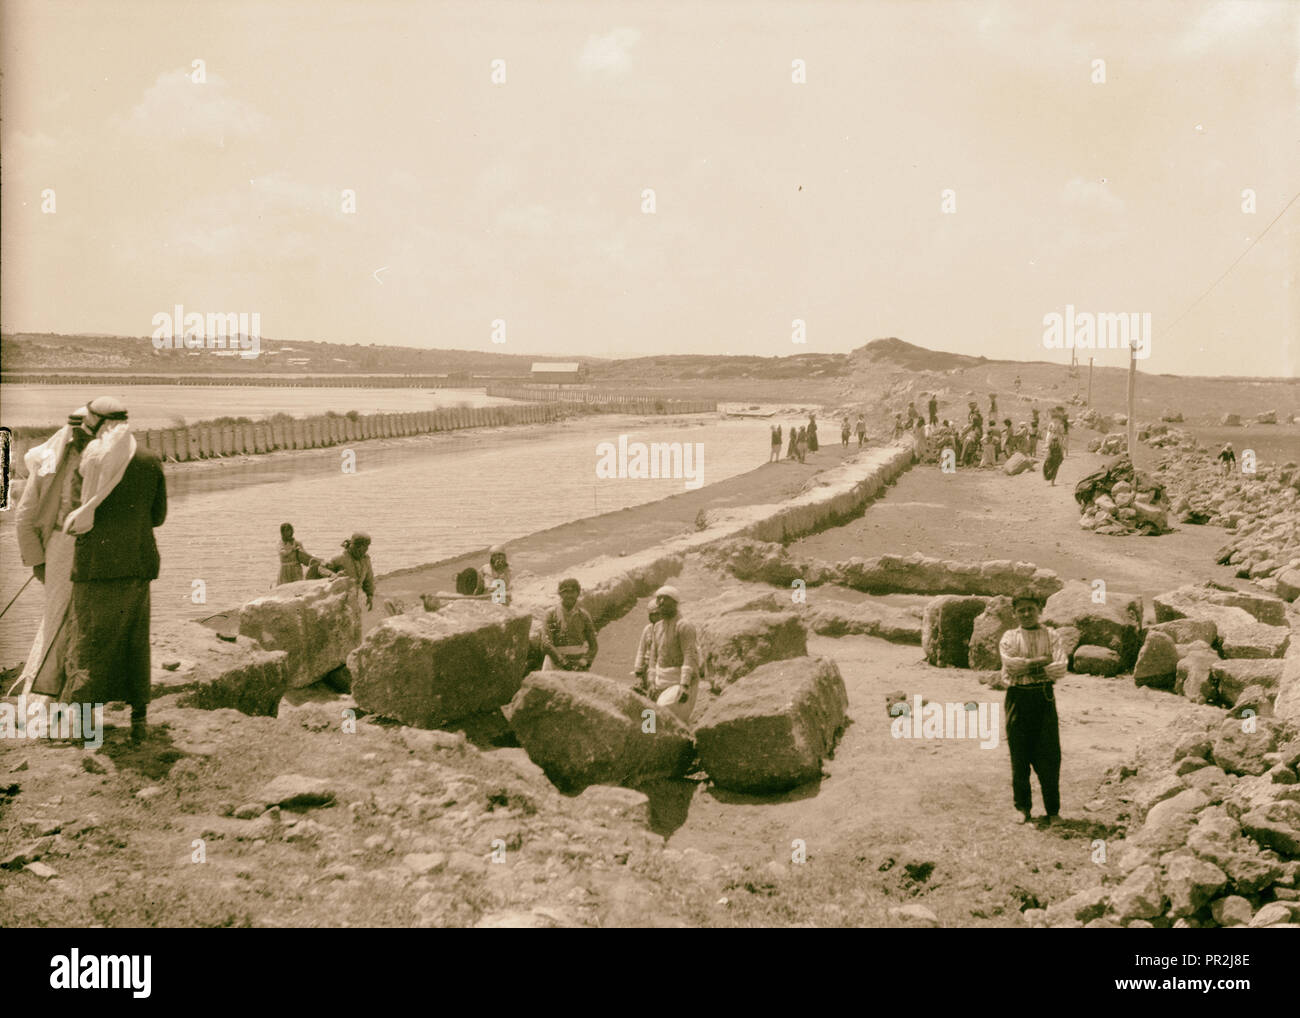 Northern views. Athlit. Excavating the city wall. 1920, Israel, ʾAtlit - Stock Image